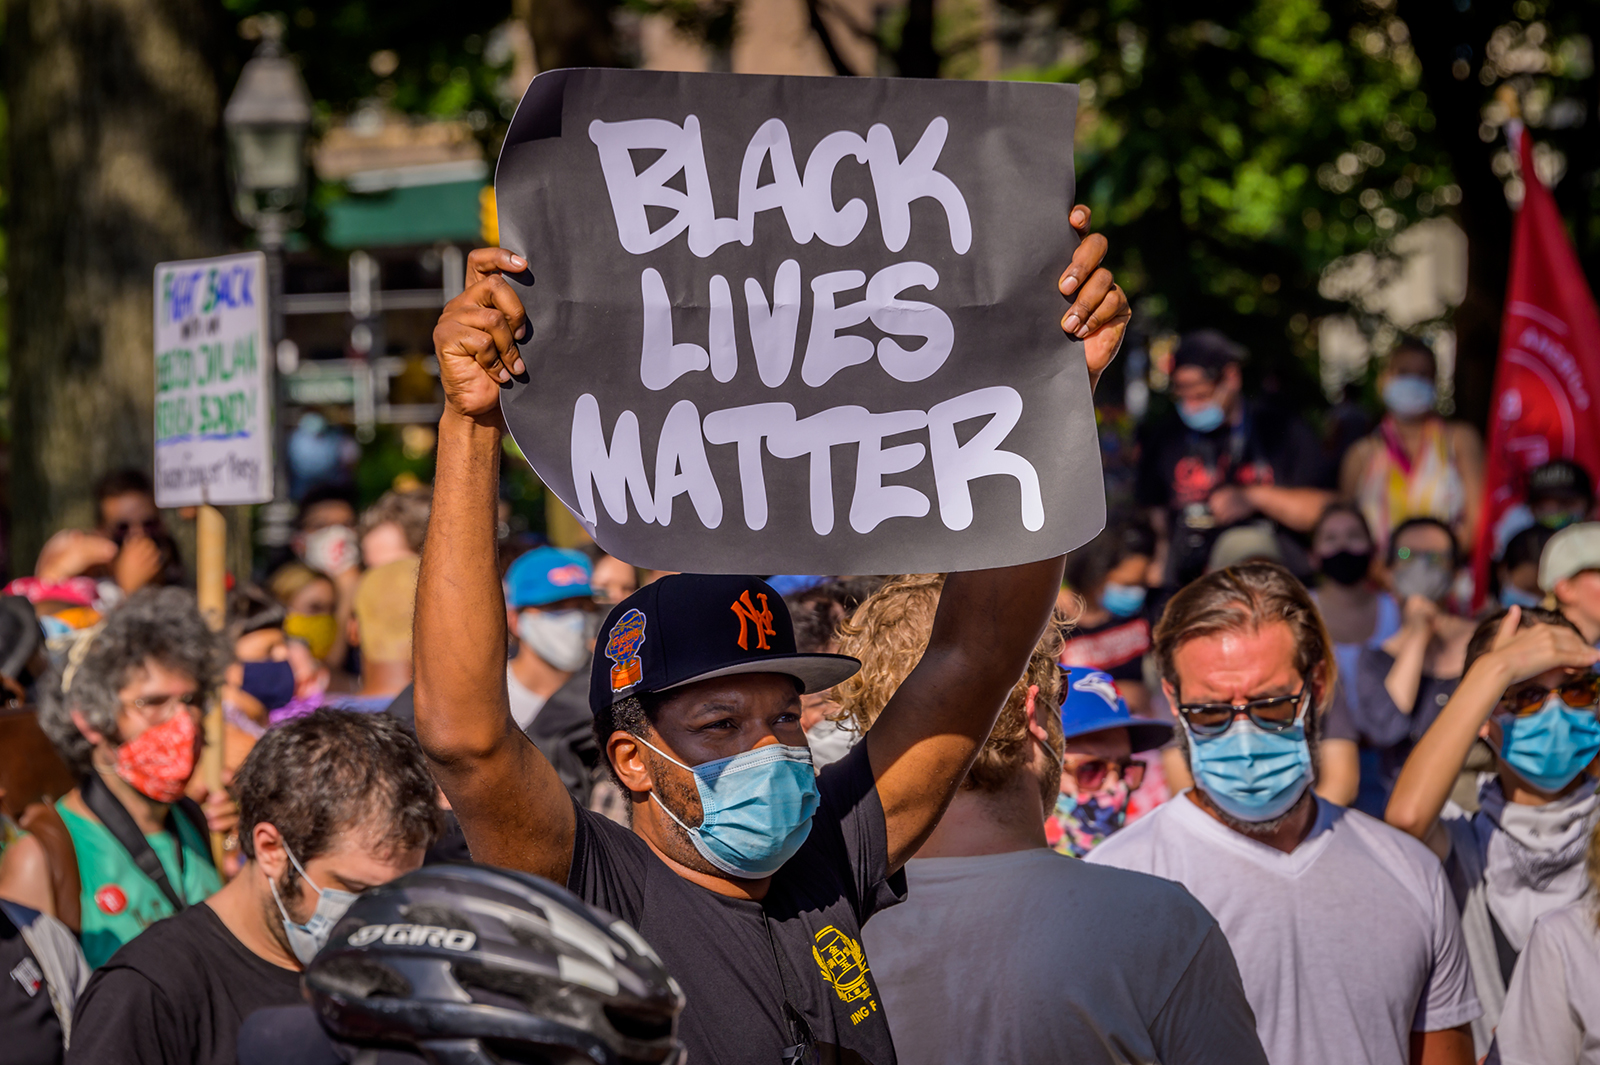 New York AG says Black Lives Matter Foundation 'not affiliated with the movement' and orders it to stop collecting donations